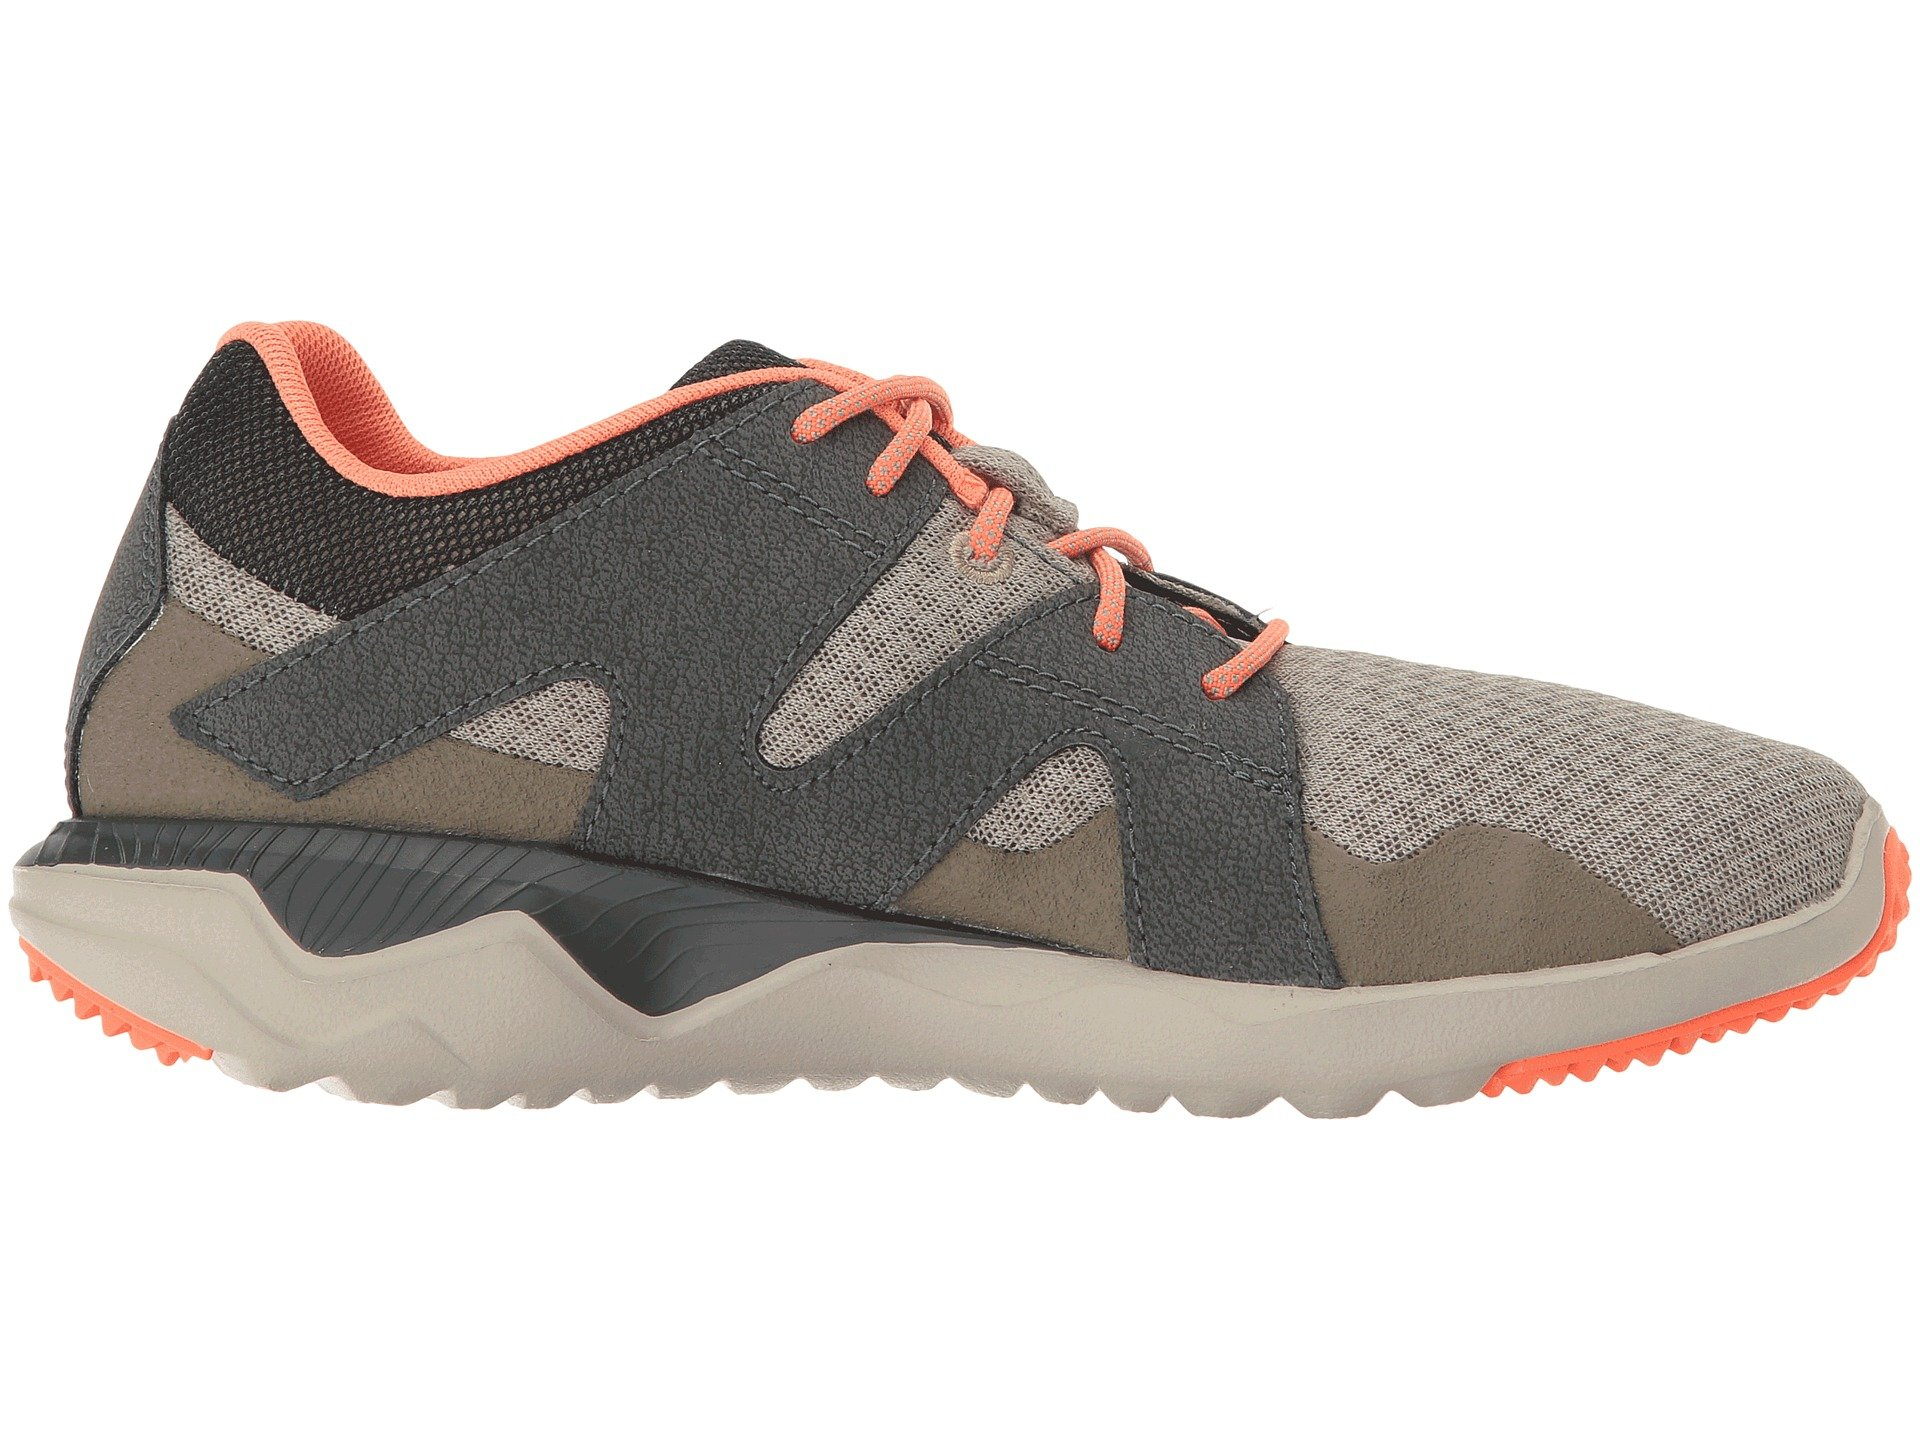 Merrell Shoes Lace Up Styles